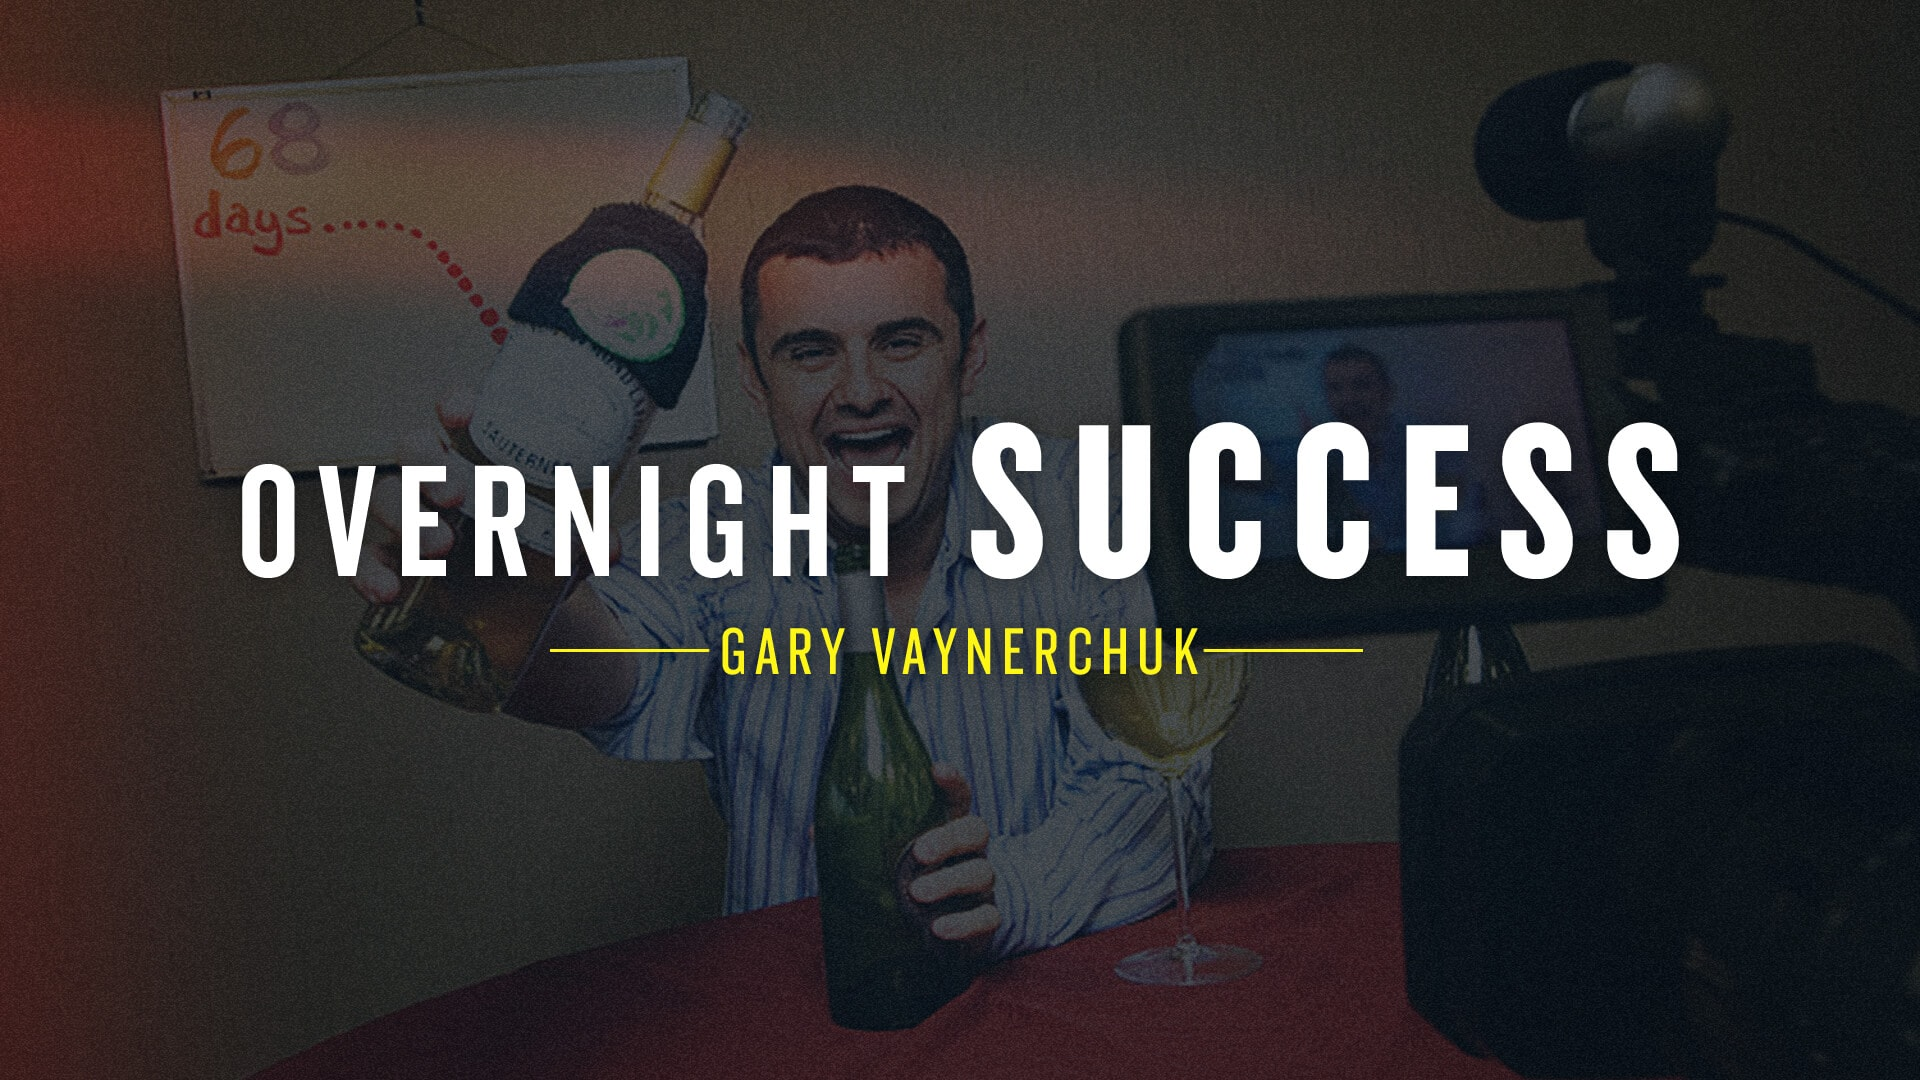 Gary Vaynerchuk overnight success